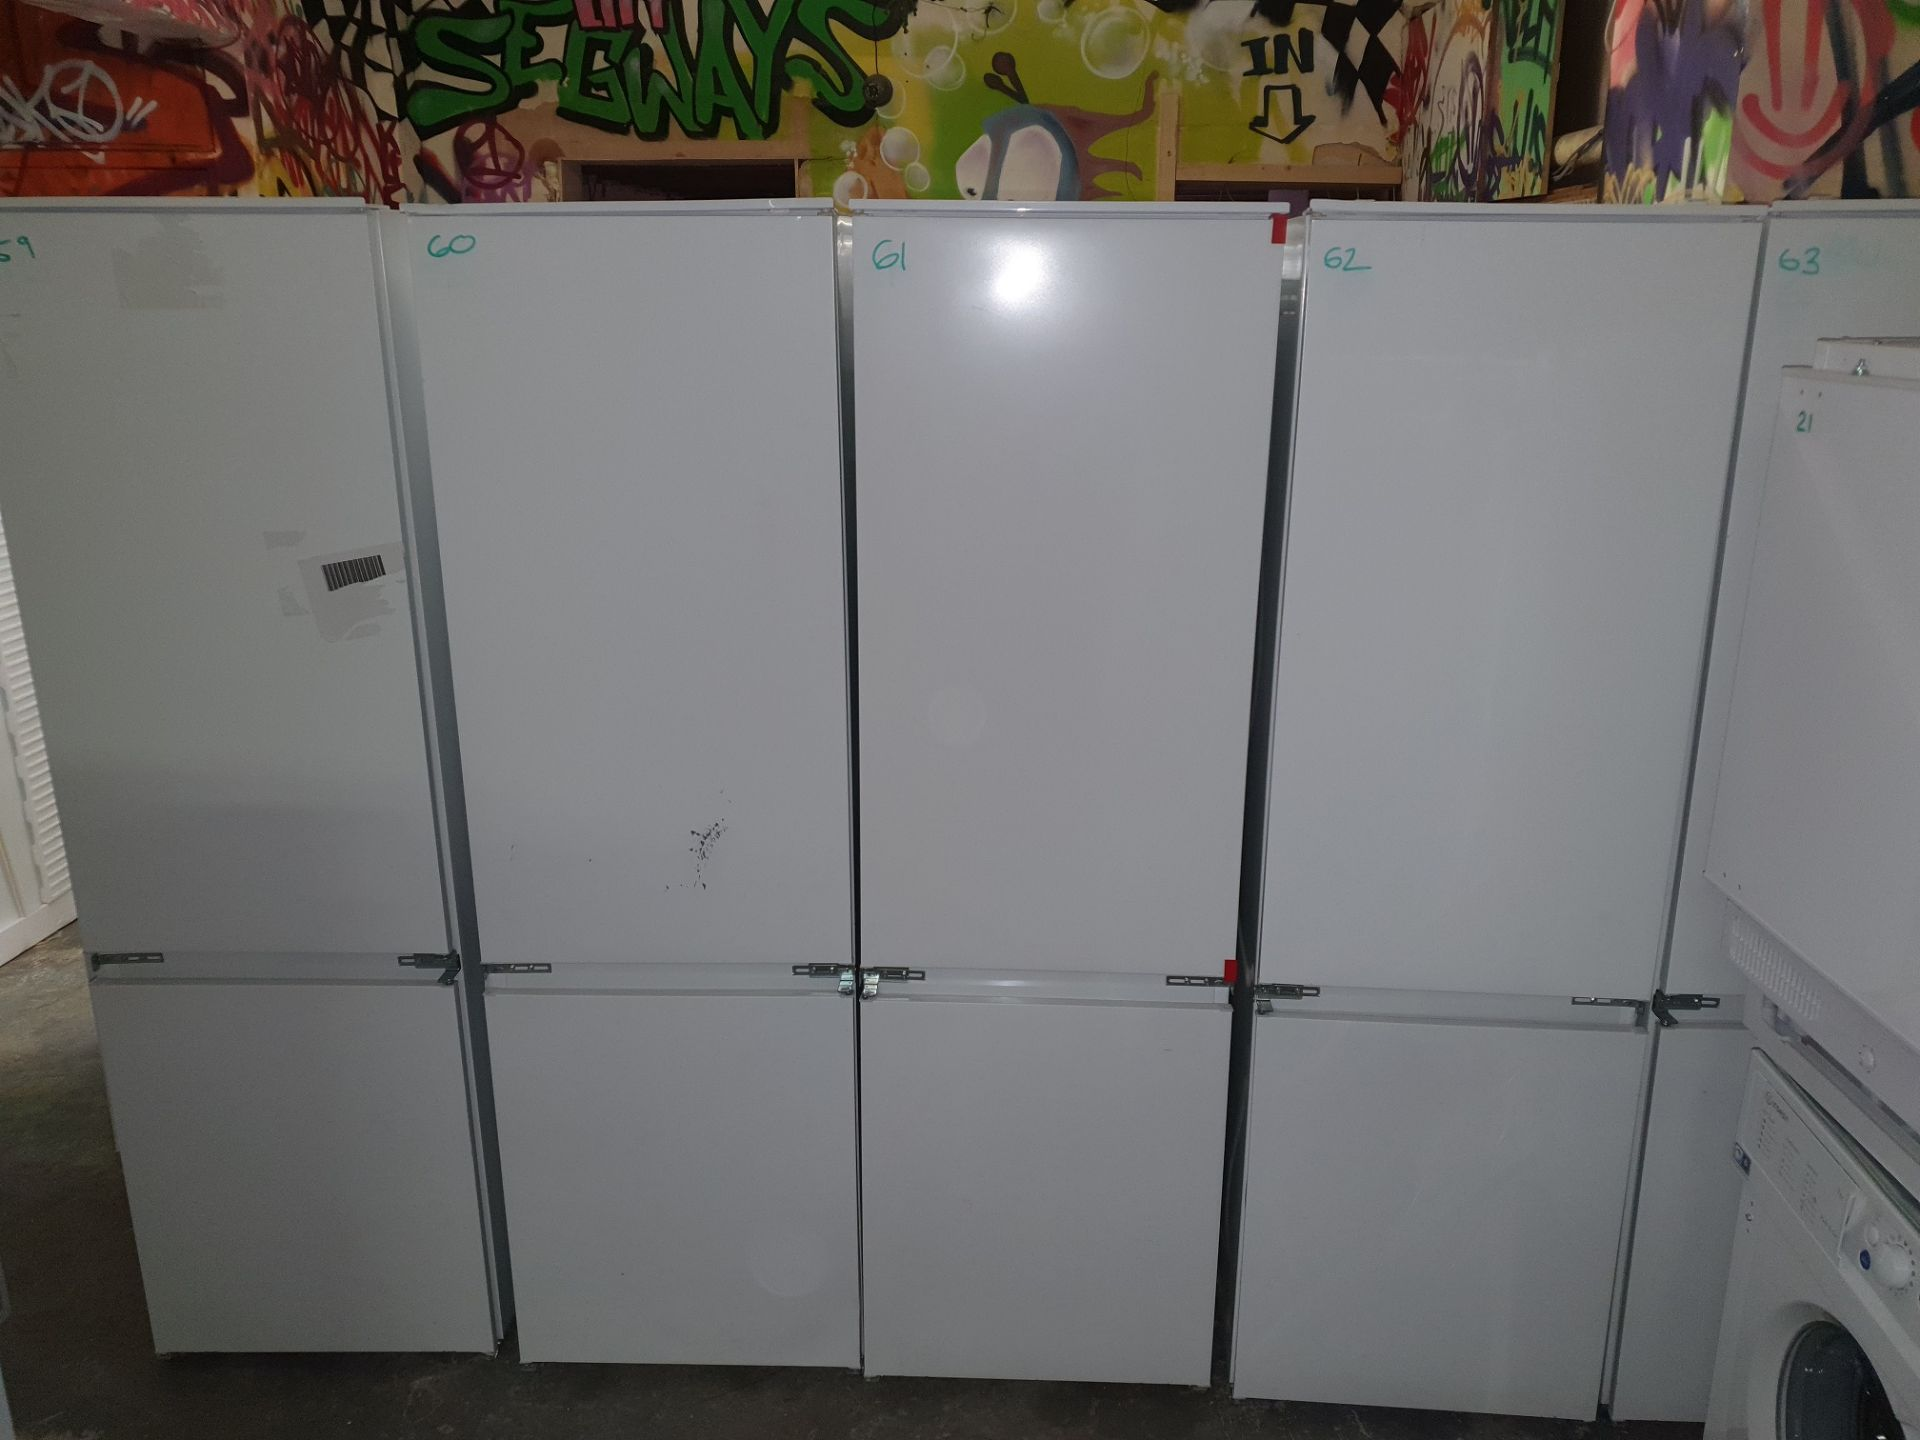 NEW/GRADED AND UNPACKAGED Electrolux ENN2853COV Built-in 70/30 Frost Free Fridge Freezer (Brand - Image 2 of 14